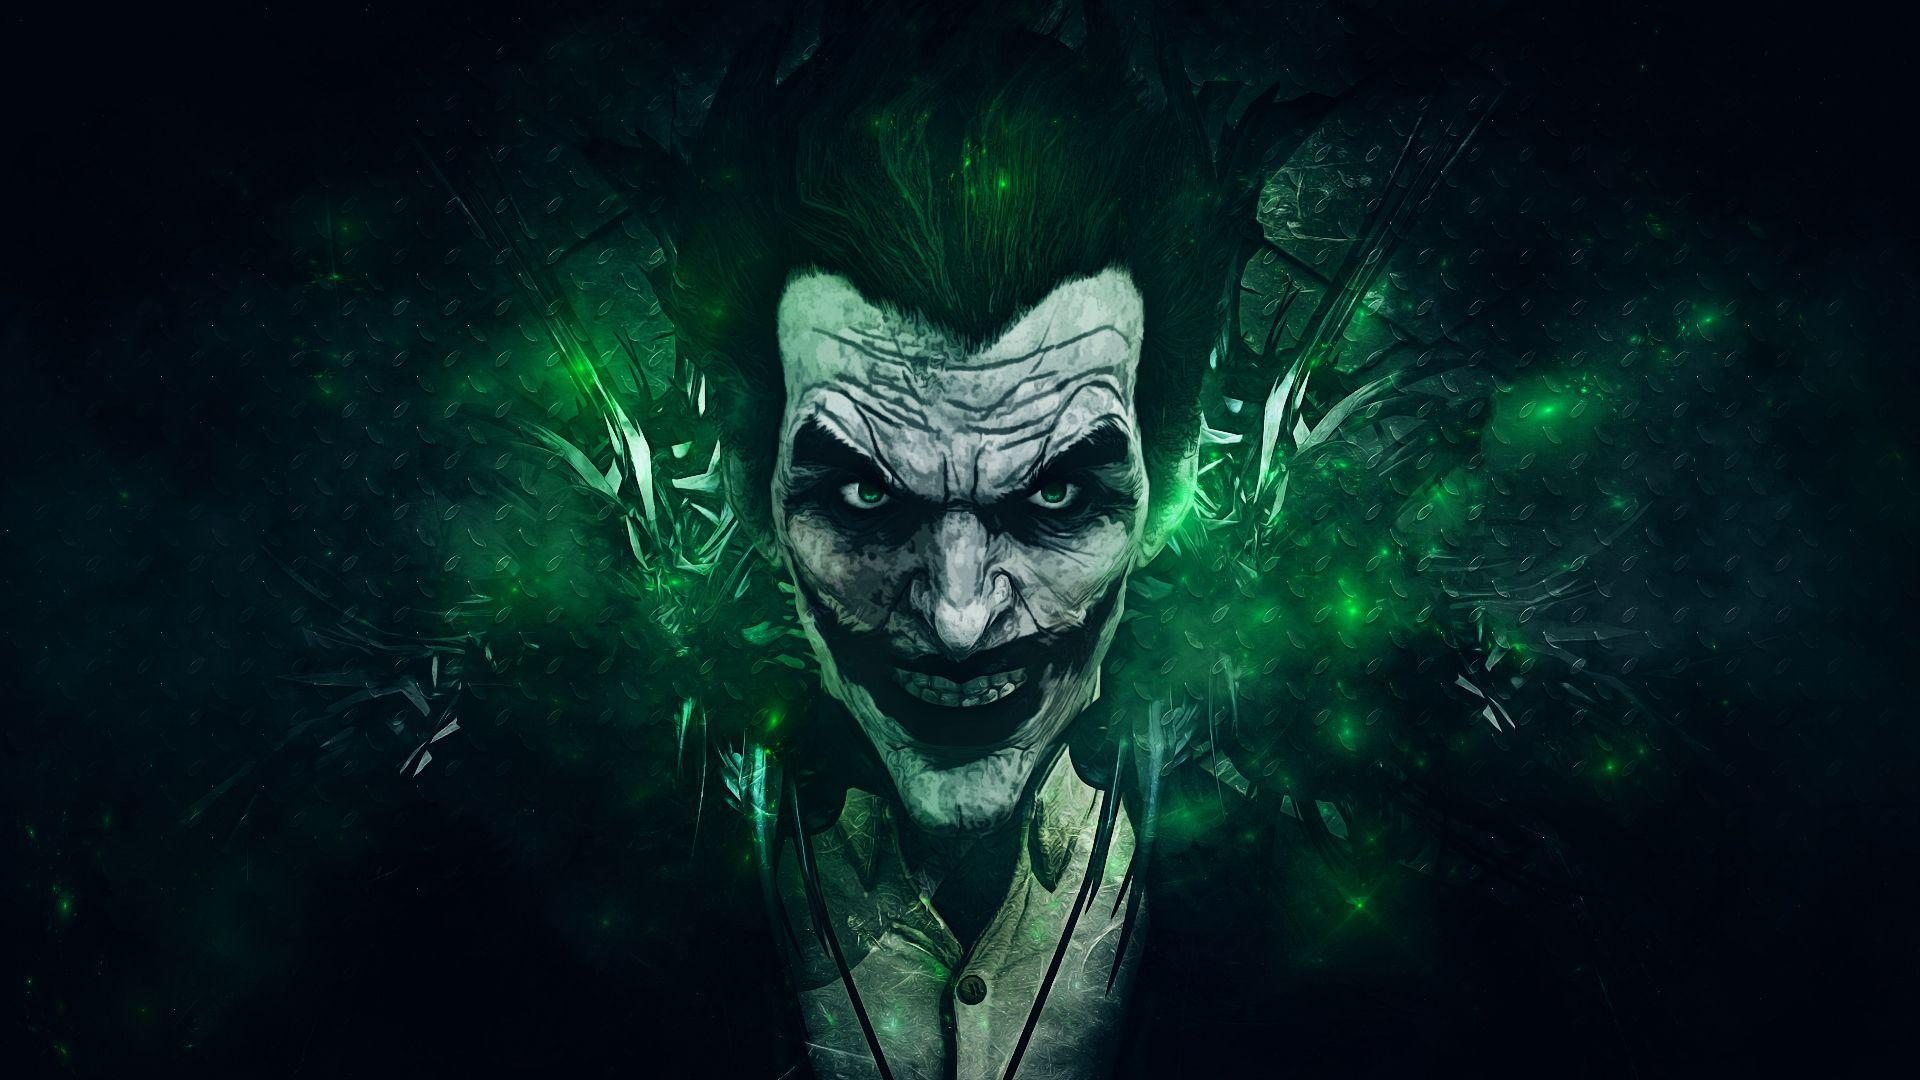 Full HD 1080p Joker Wallpapers HD, Desktop Backgrounds 1920x1080 ...